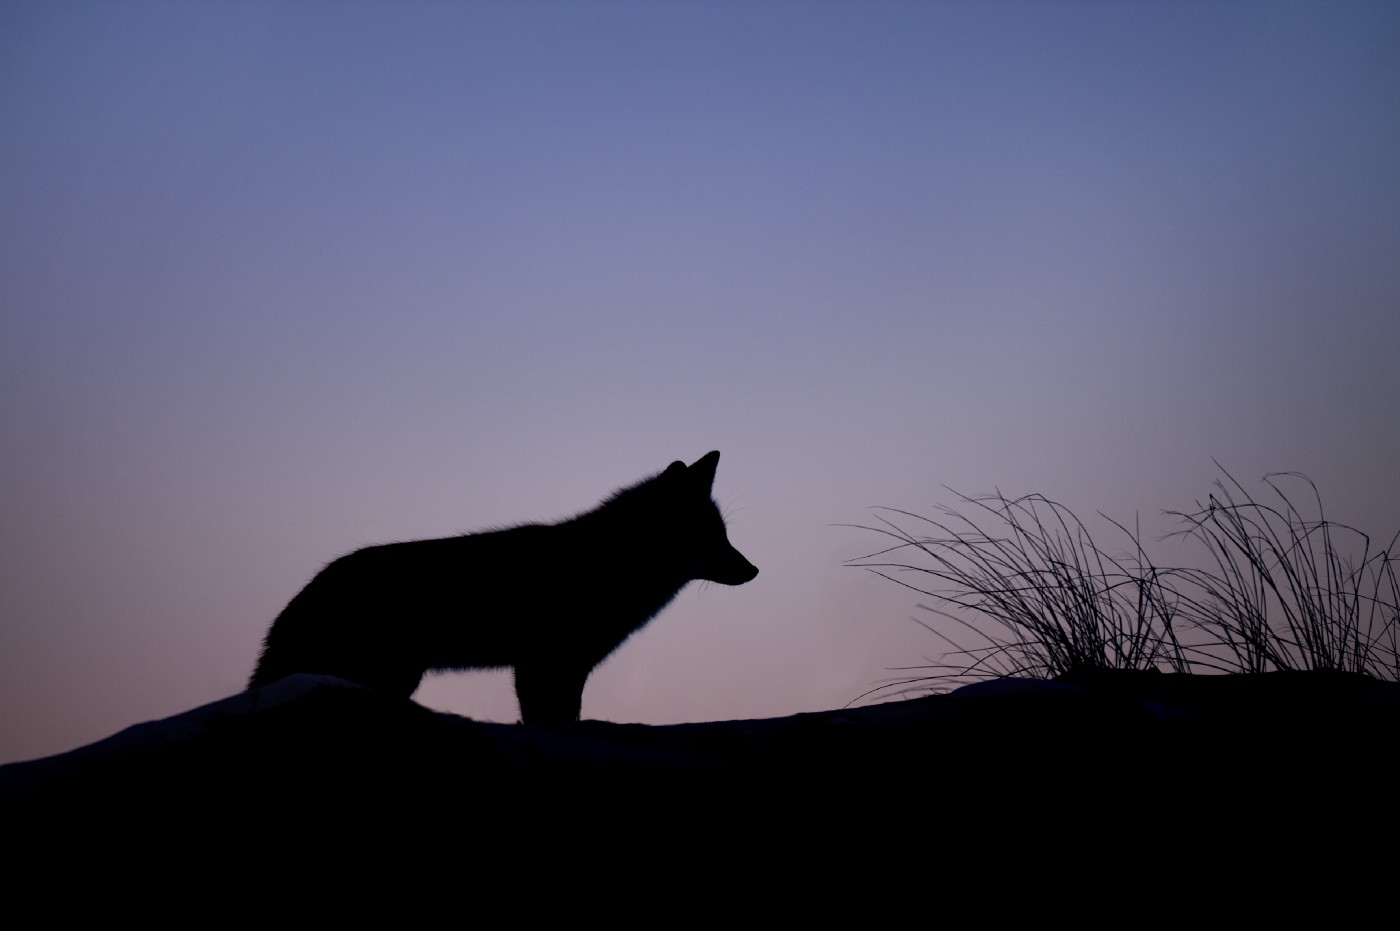 The silhouette of coyote standing on hill with purple sky behind it.